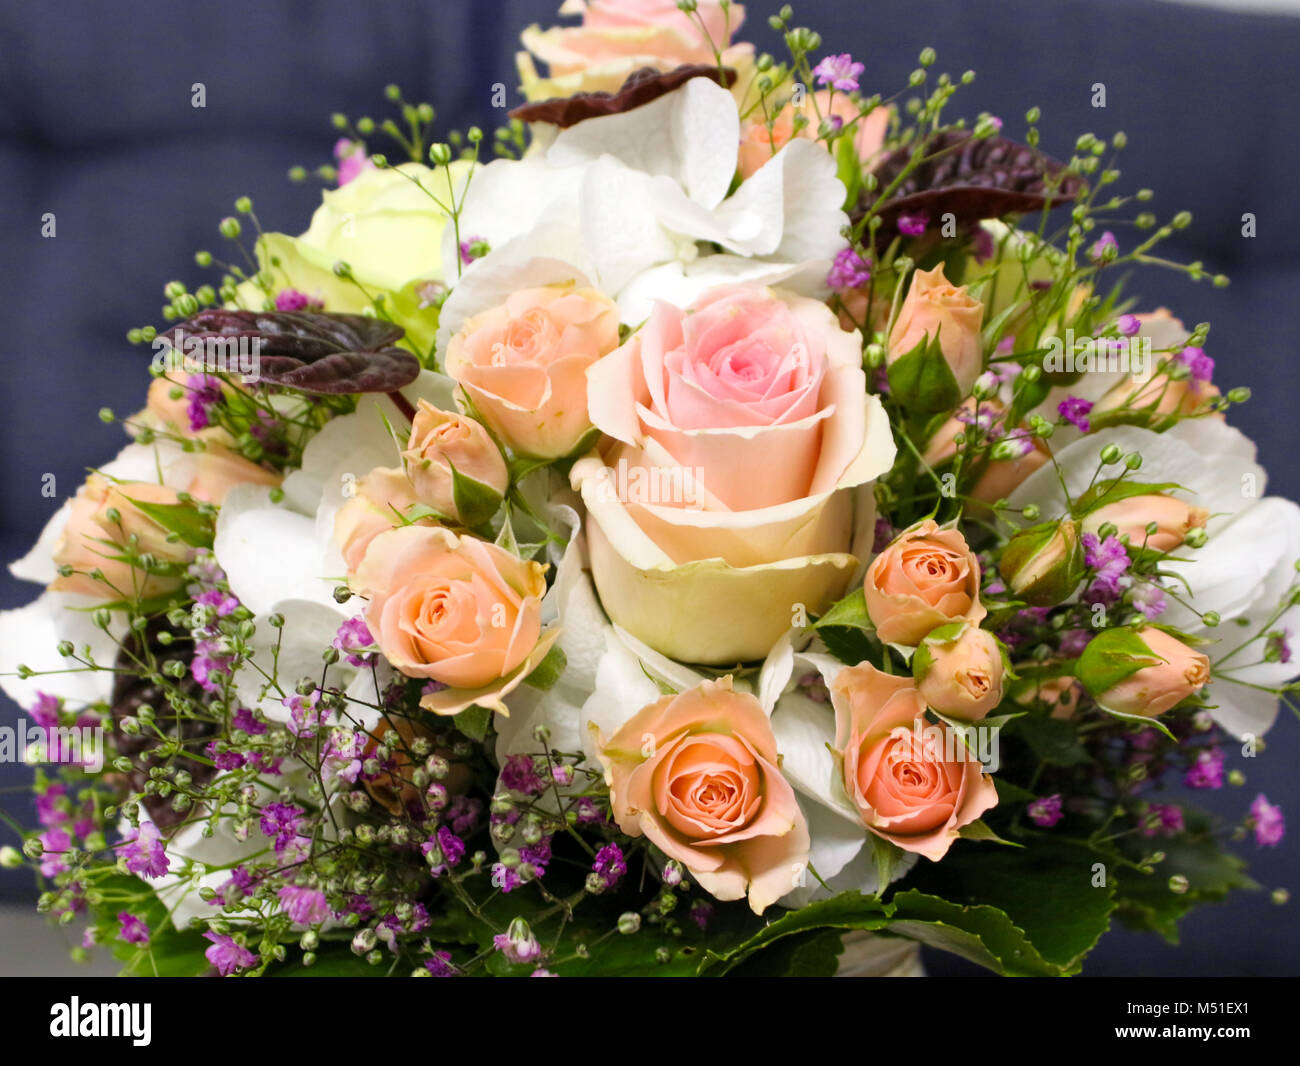 Violets And Roses Stock Photos & Violets And Roses Stock Images - Alamy